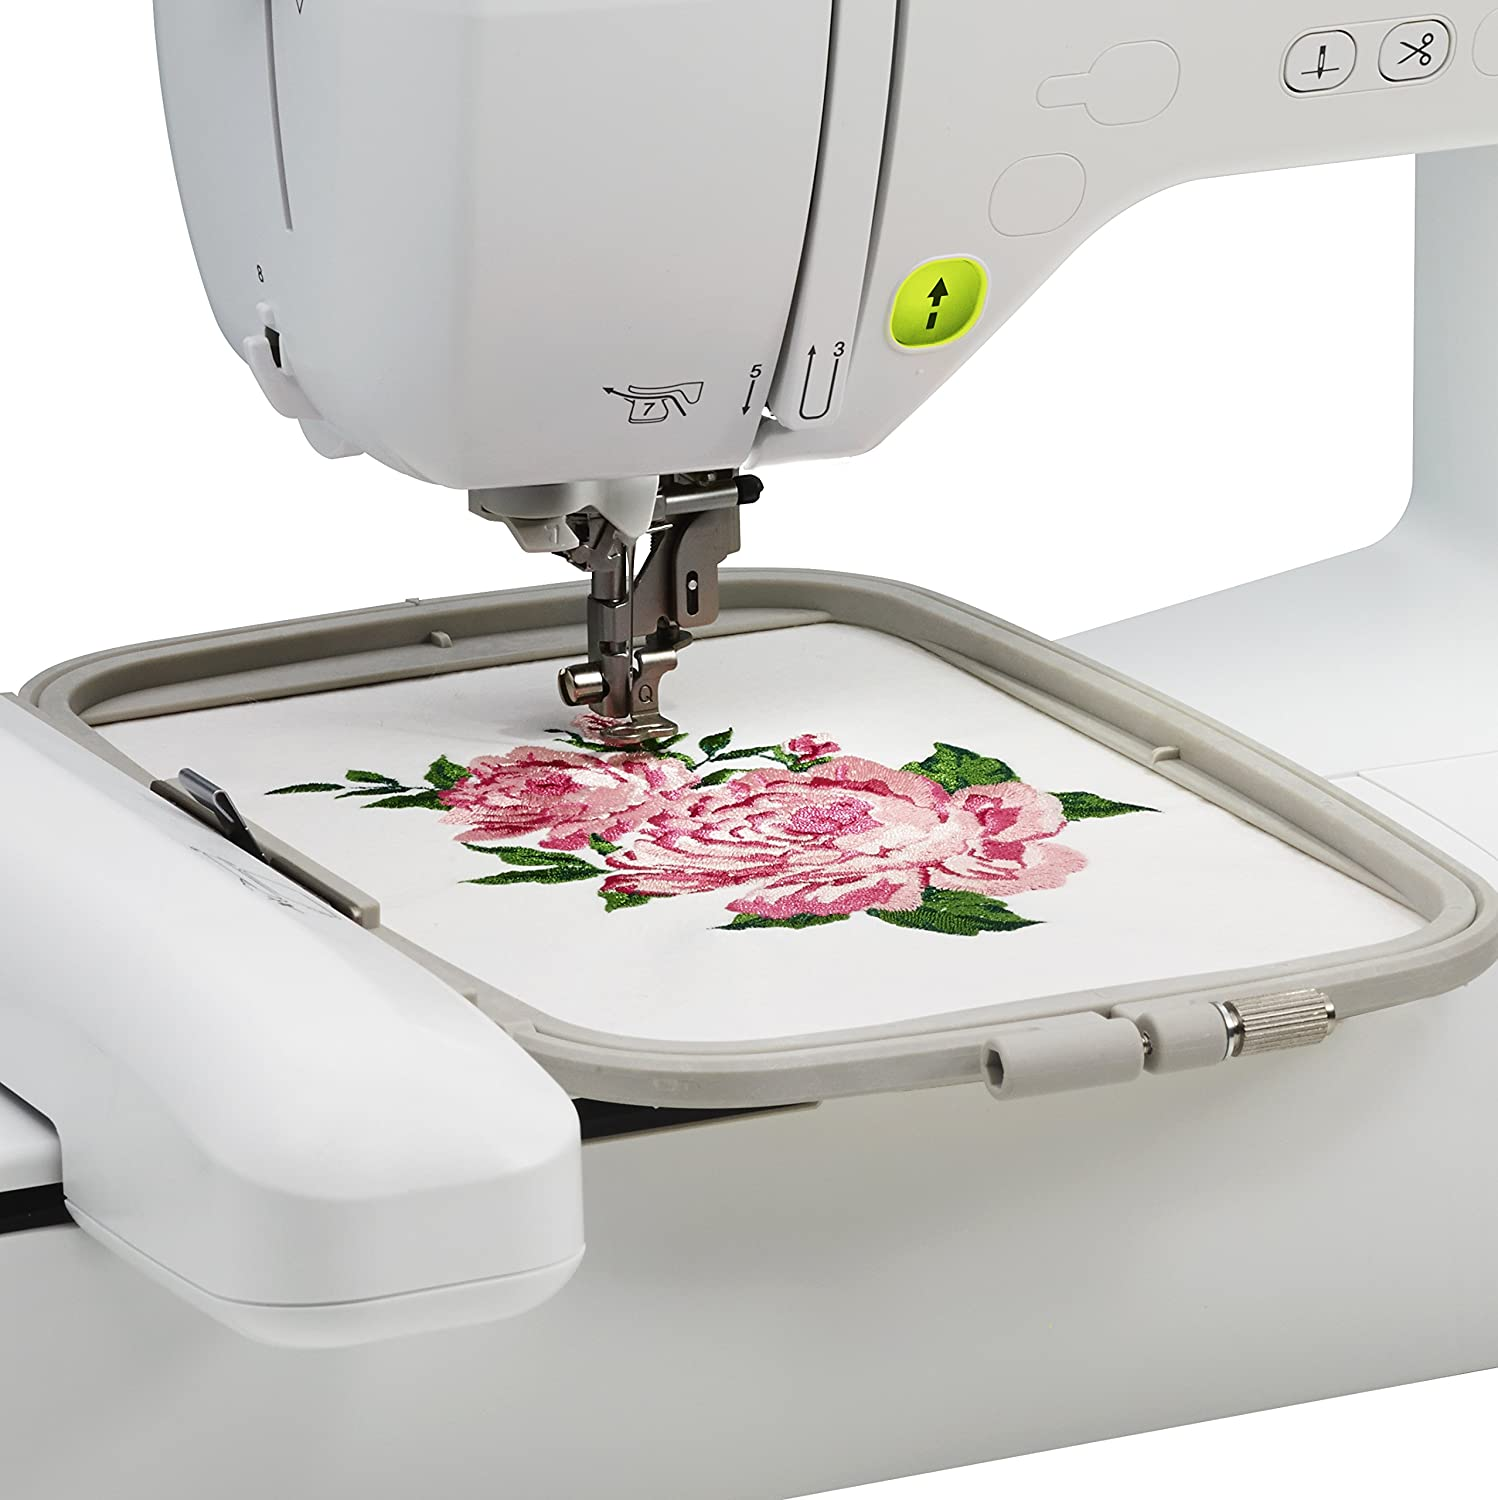 Best Embroidery Machine Reviews: A Must for Women in the Household 4